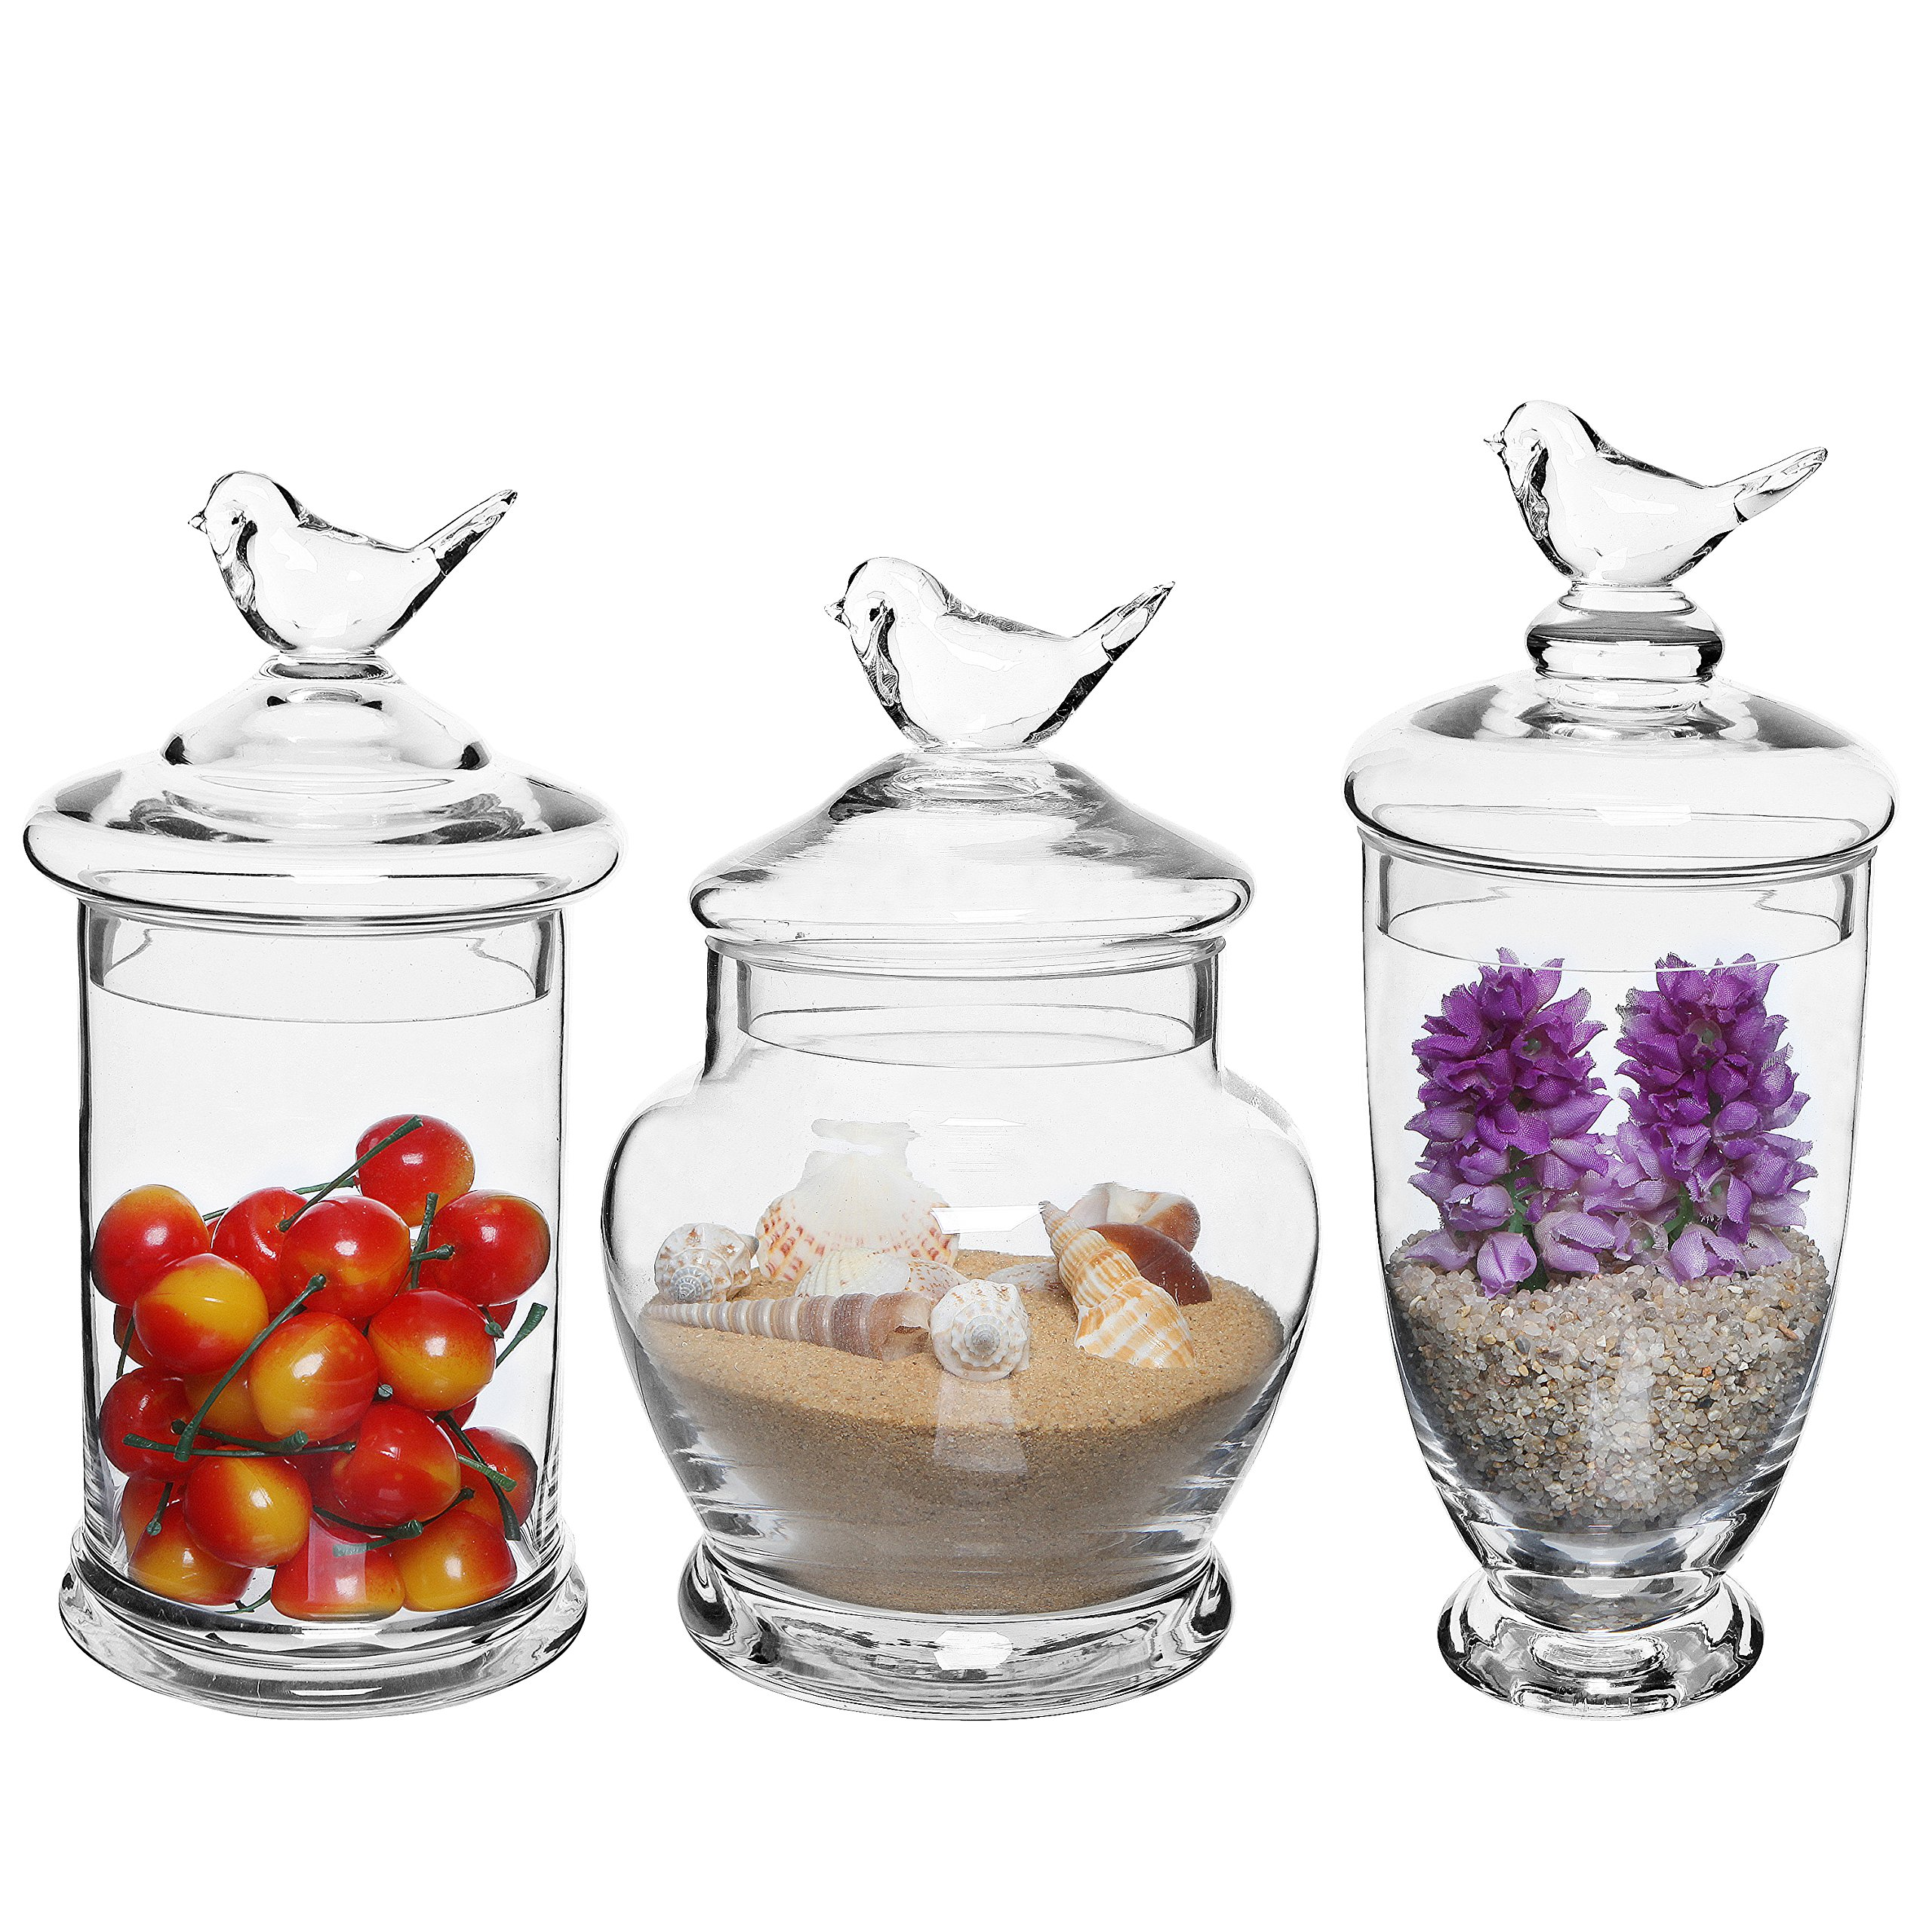 MyGift Clear Glass Apothecary Jars (3 Piece Set) with Bird Lid Design Wedding Candy Buffet Containers by MyGift